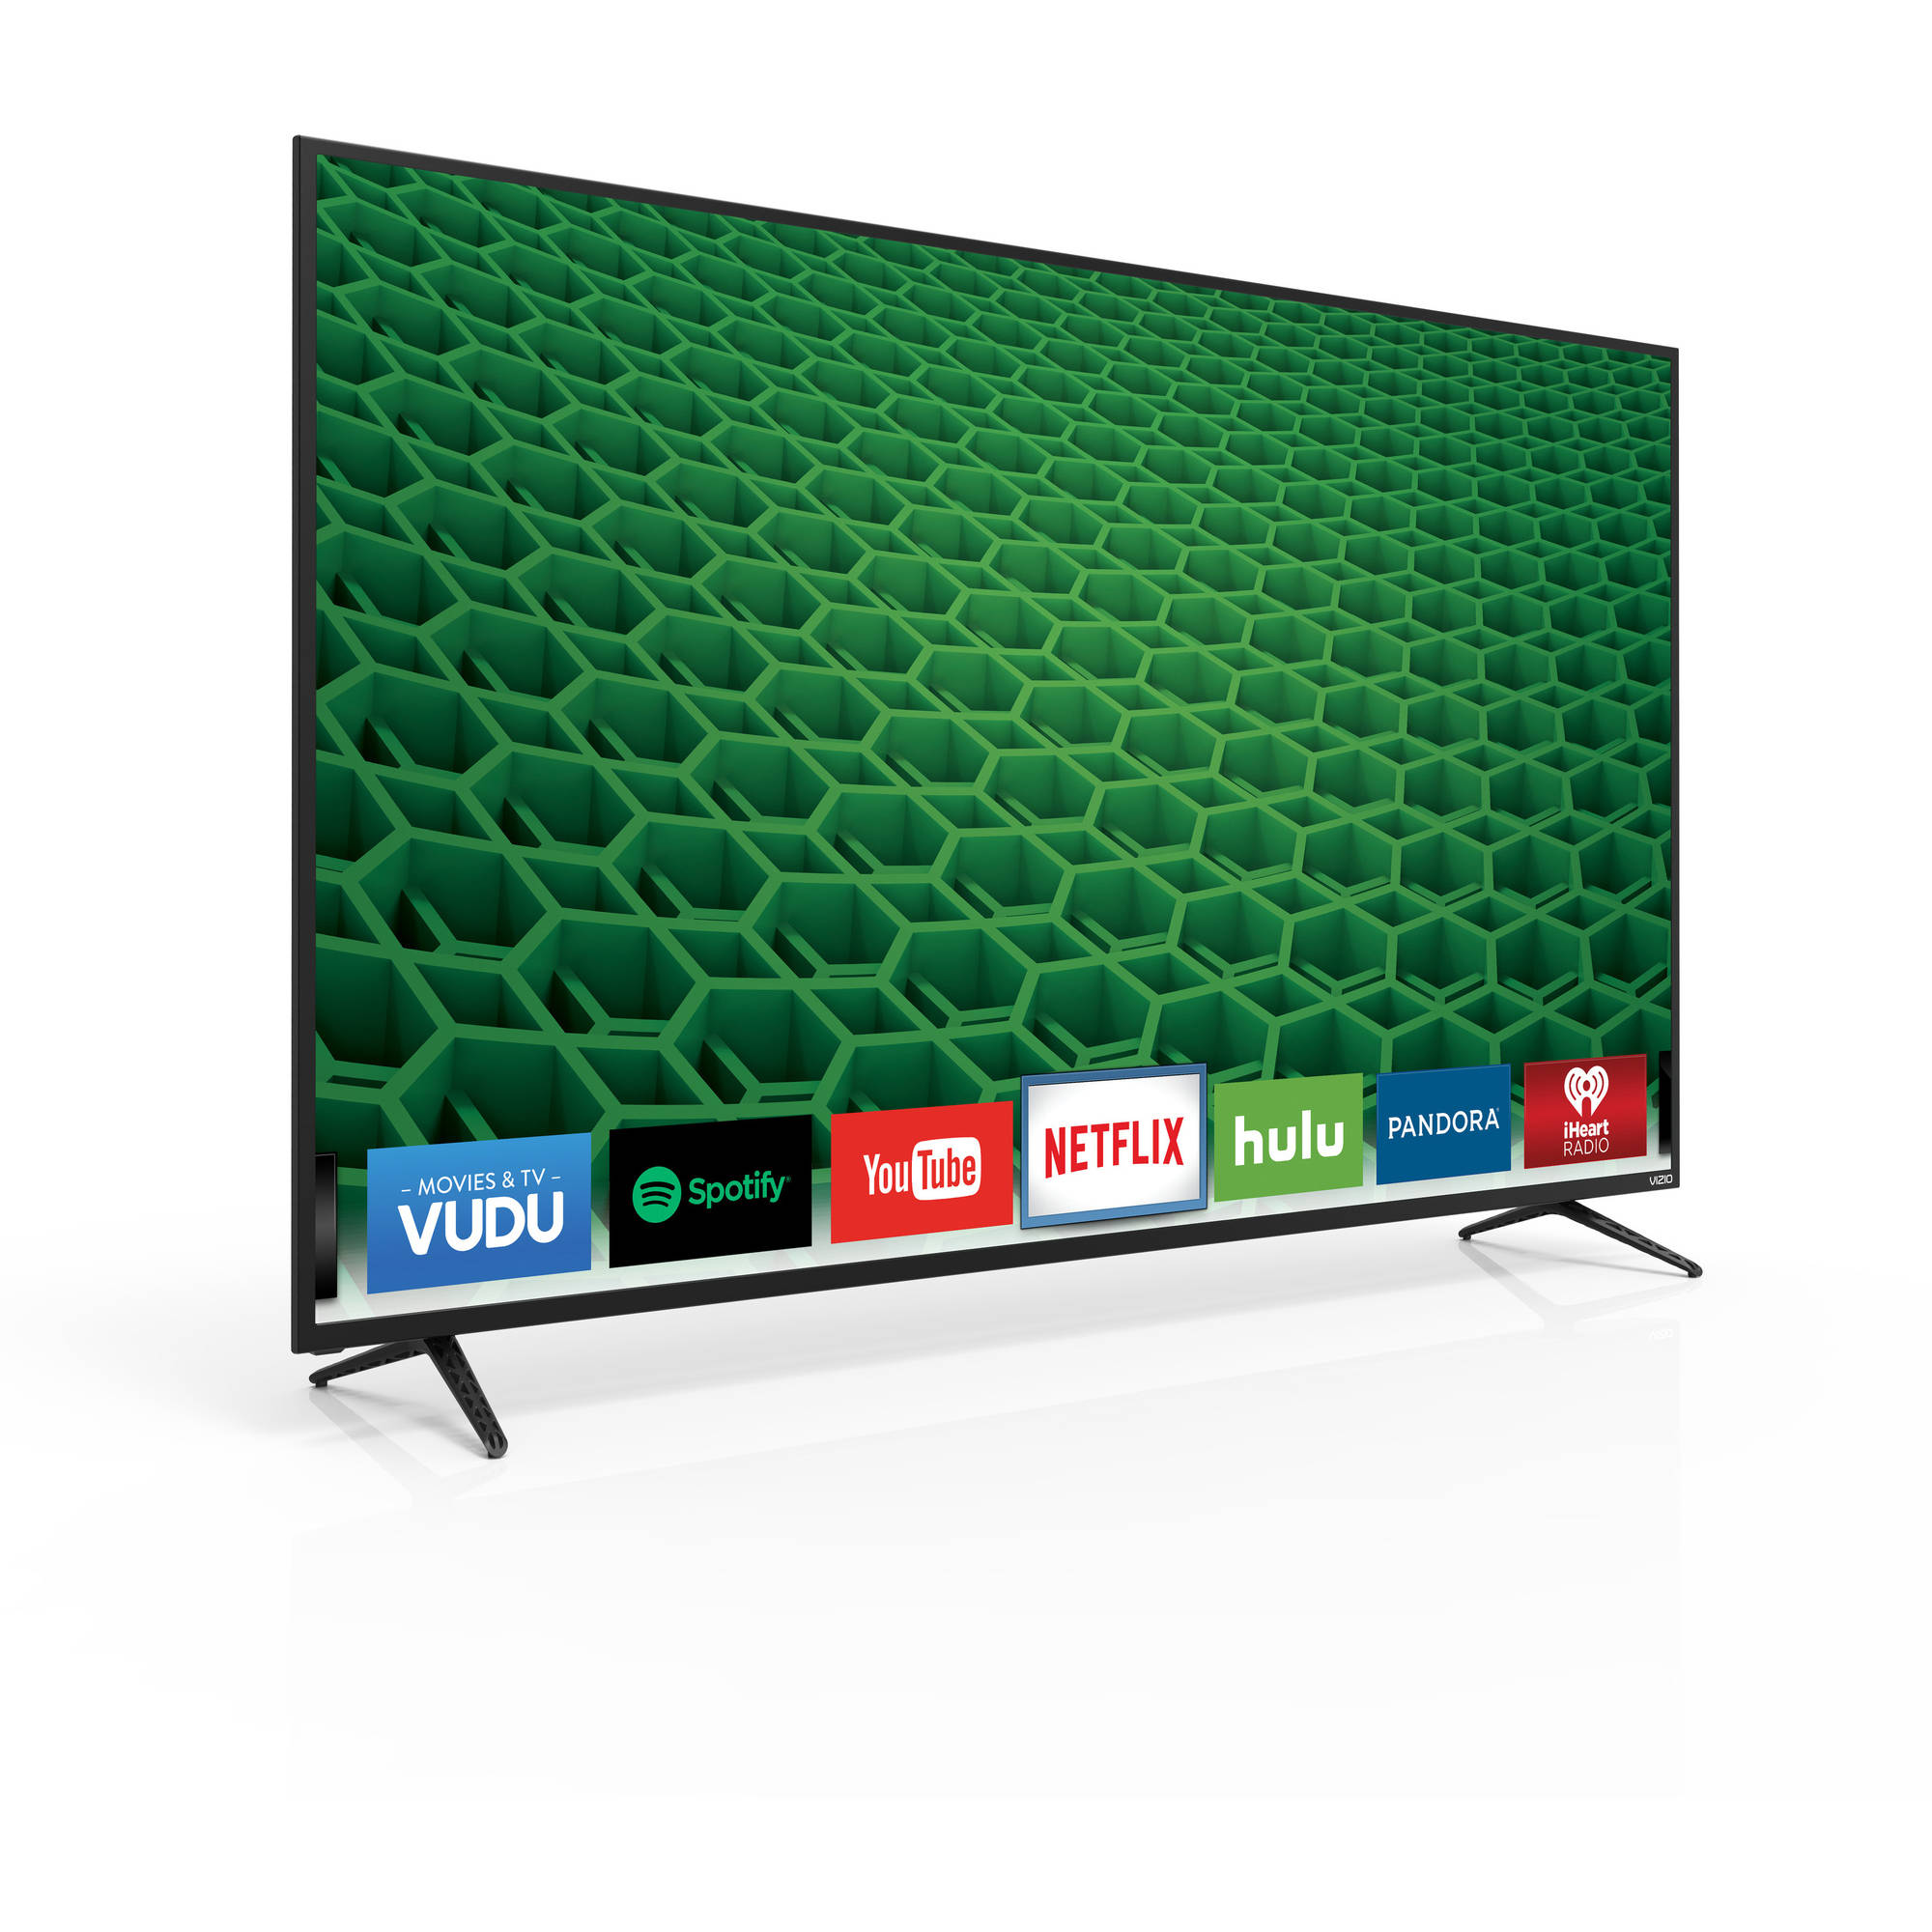 Home 187 schlafen amp bad 187 wellness pur - Vizio D Series 70 Class 69 5 Diag 1080p 120hz Full Array Led Smart Hdtv D70 D3 Walmart Com